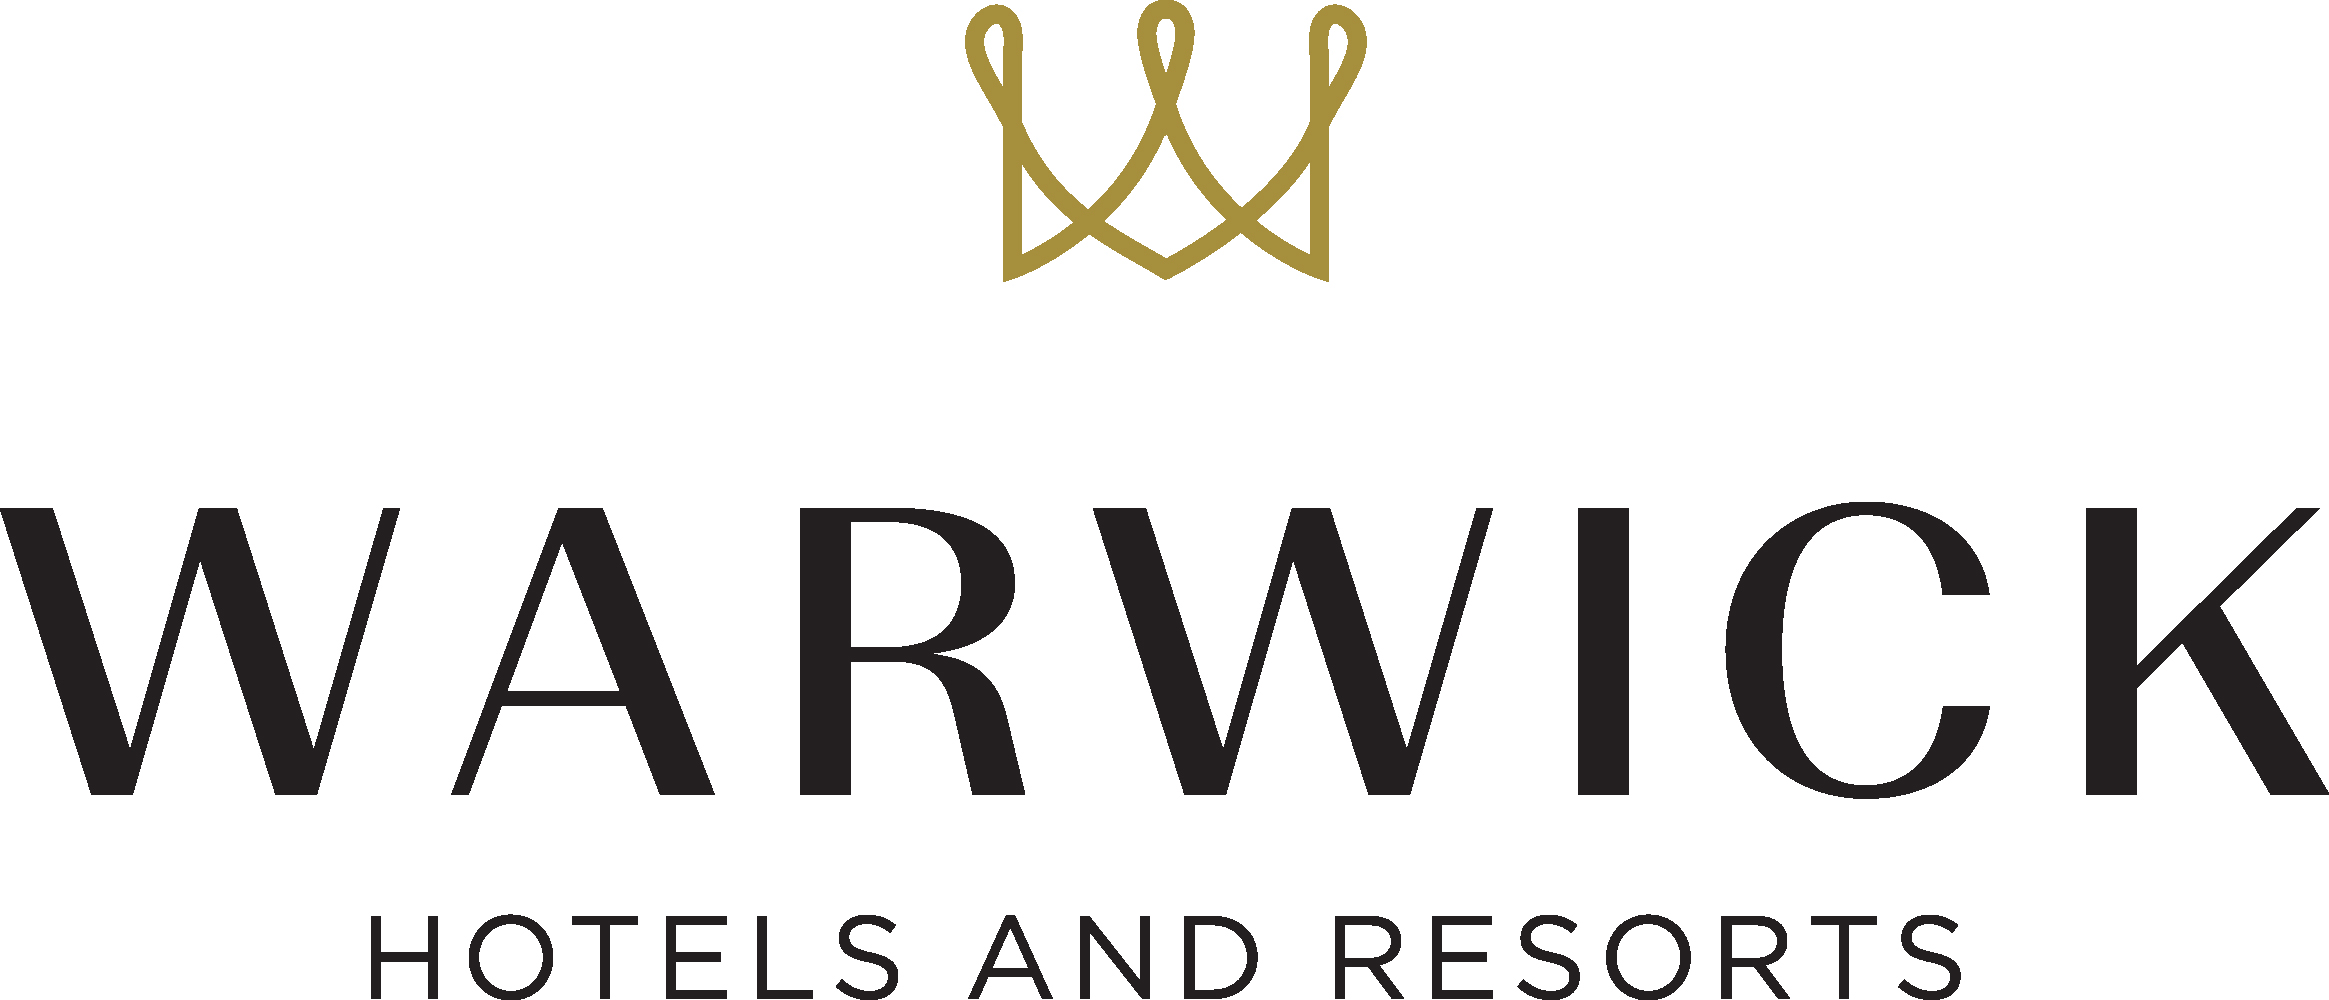 Warwick-Hotels-and-Resorts-Logo-2016